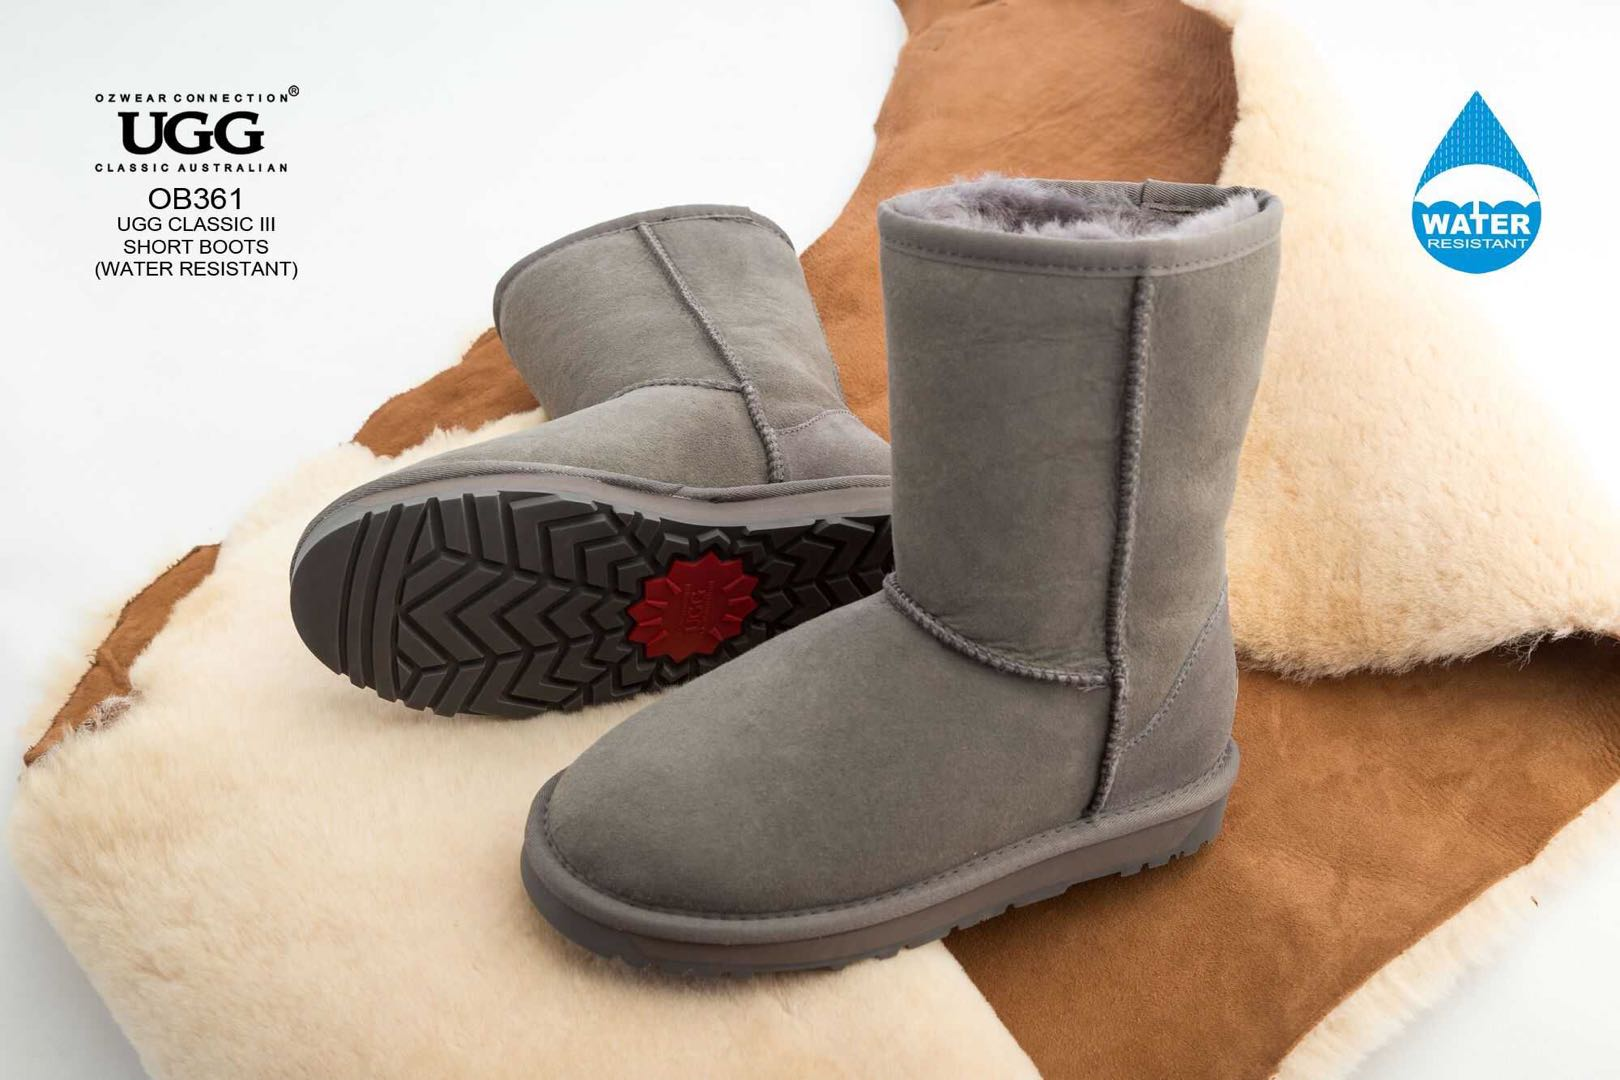 d15f8716a3e UGG OZWEAR 3G Ladies Classic Short Boots Premium Sheepskin Water ...